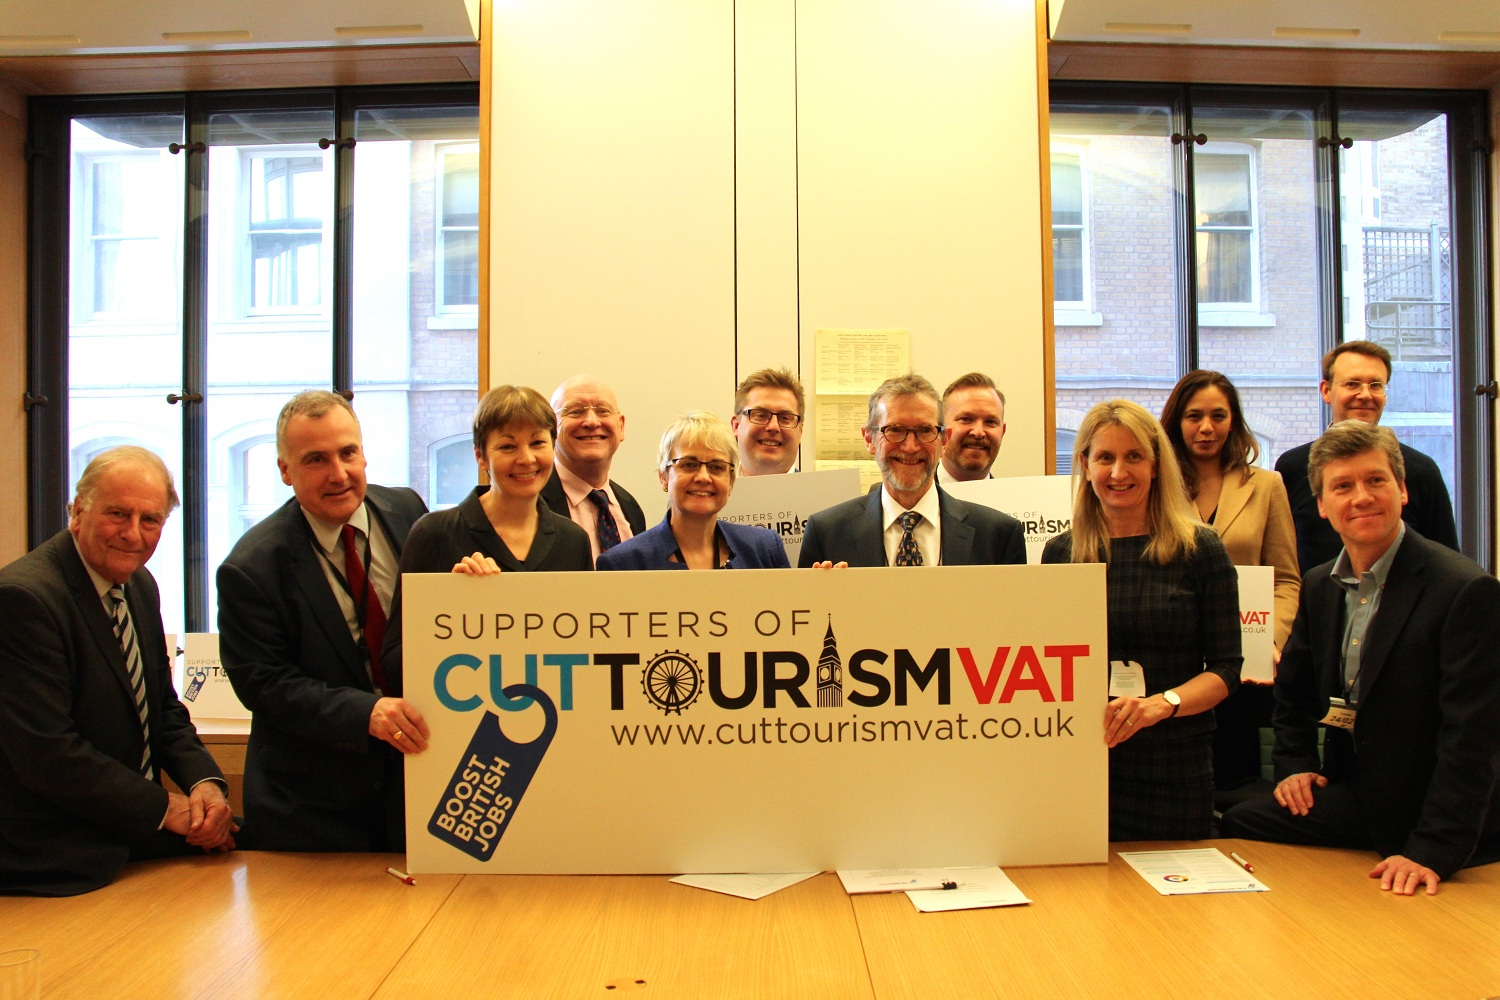 key_Cut_Tourism_VAT_Roundtable.jpg